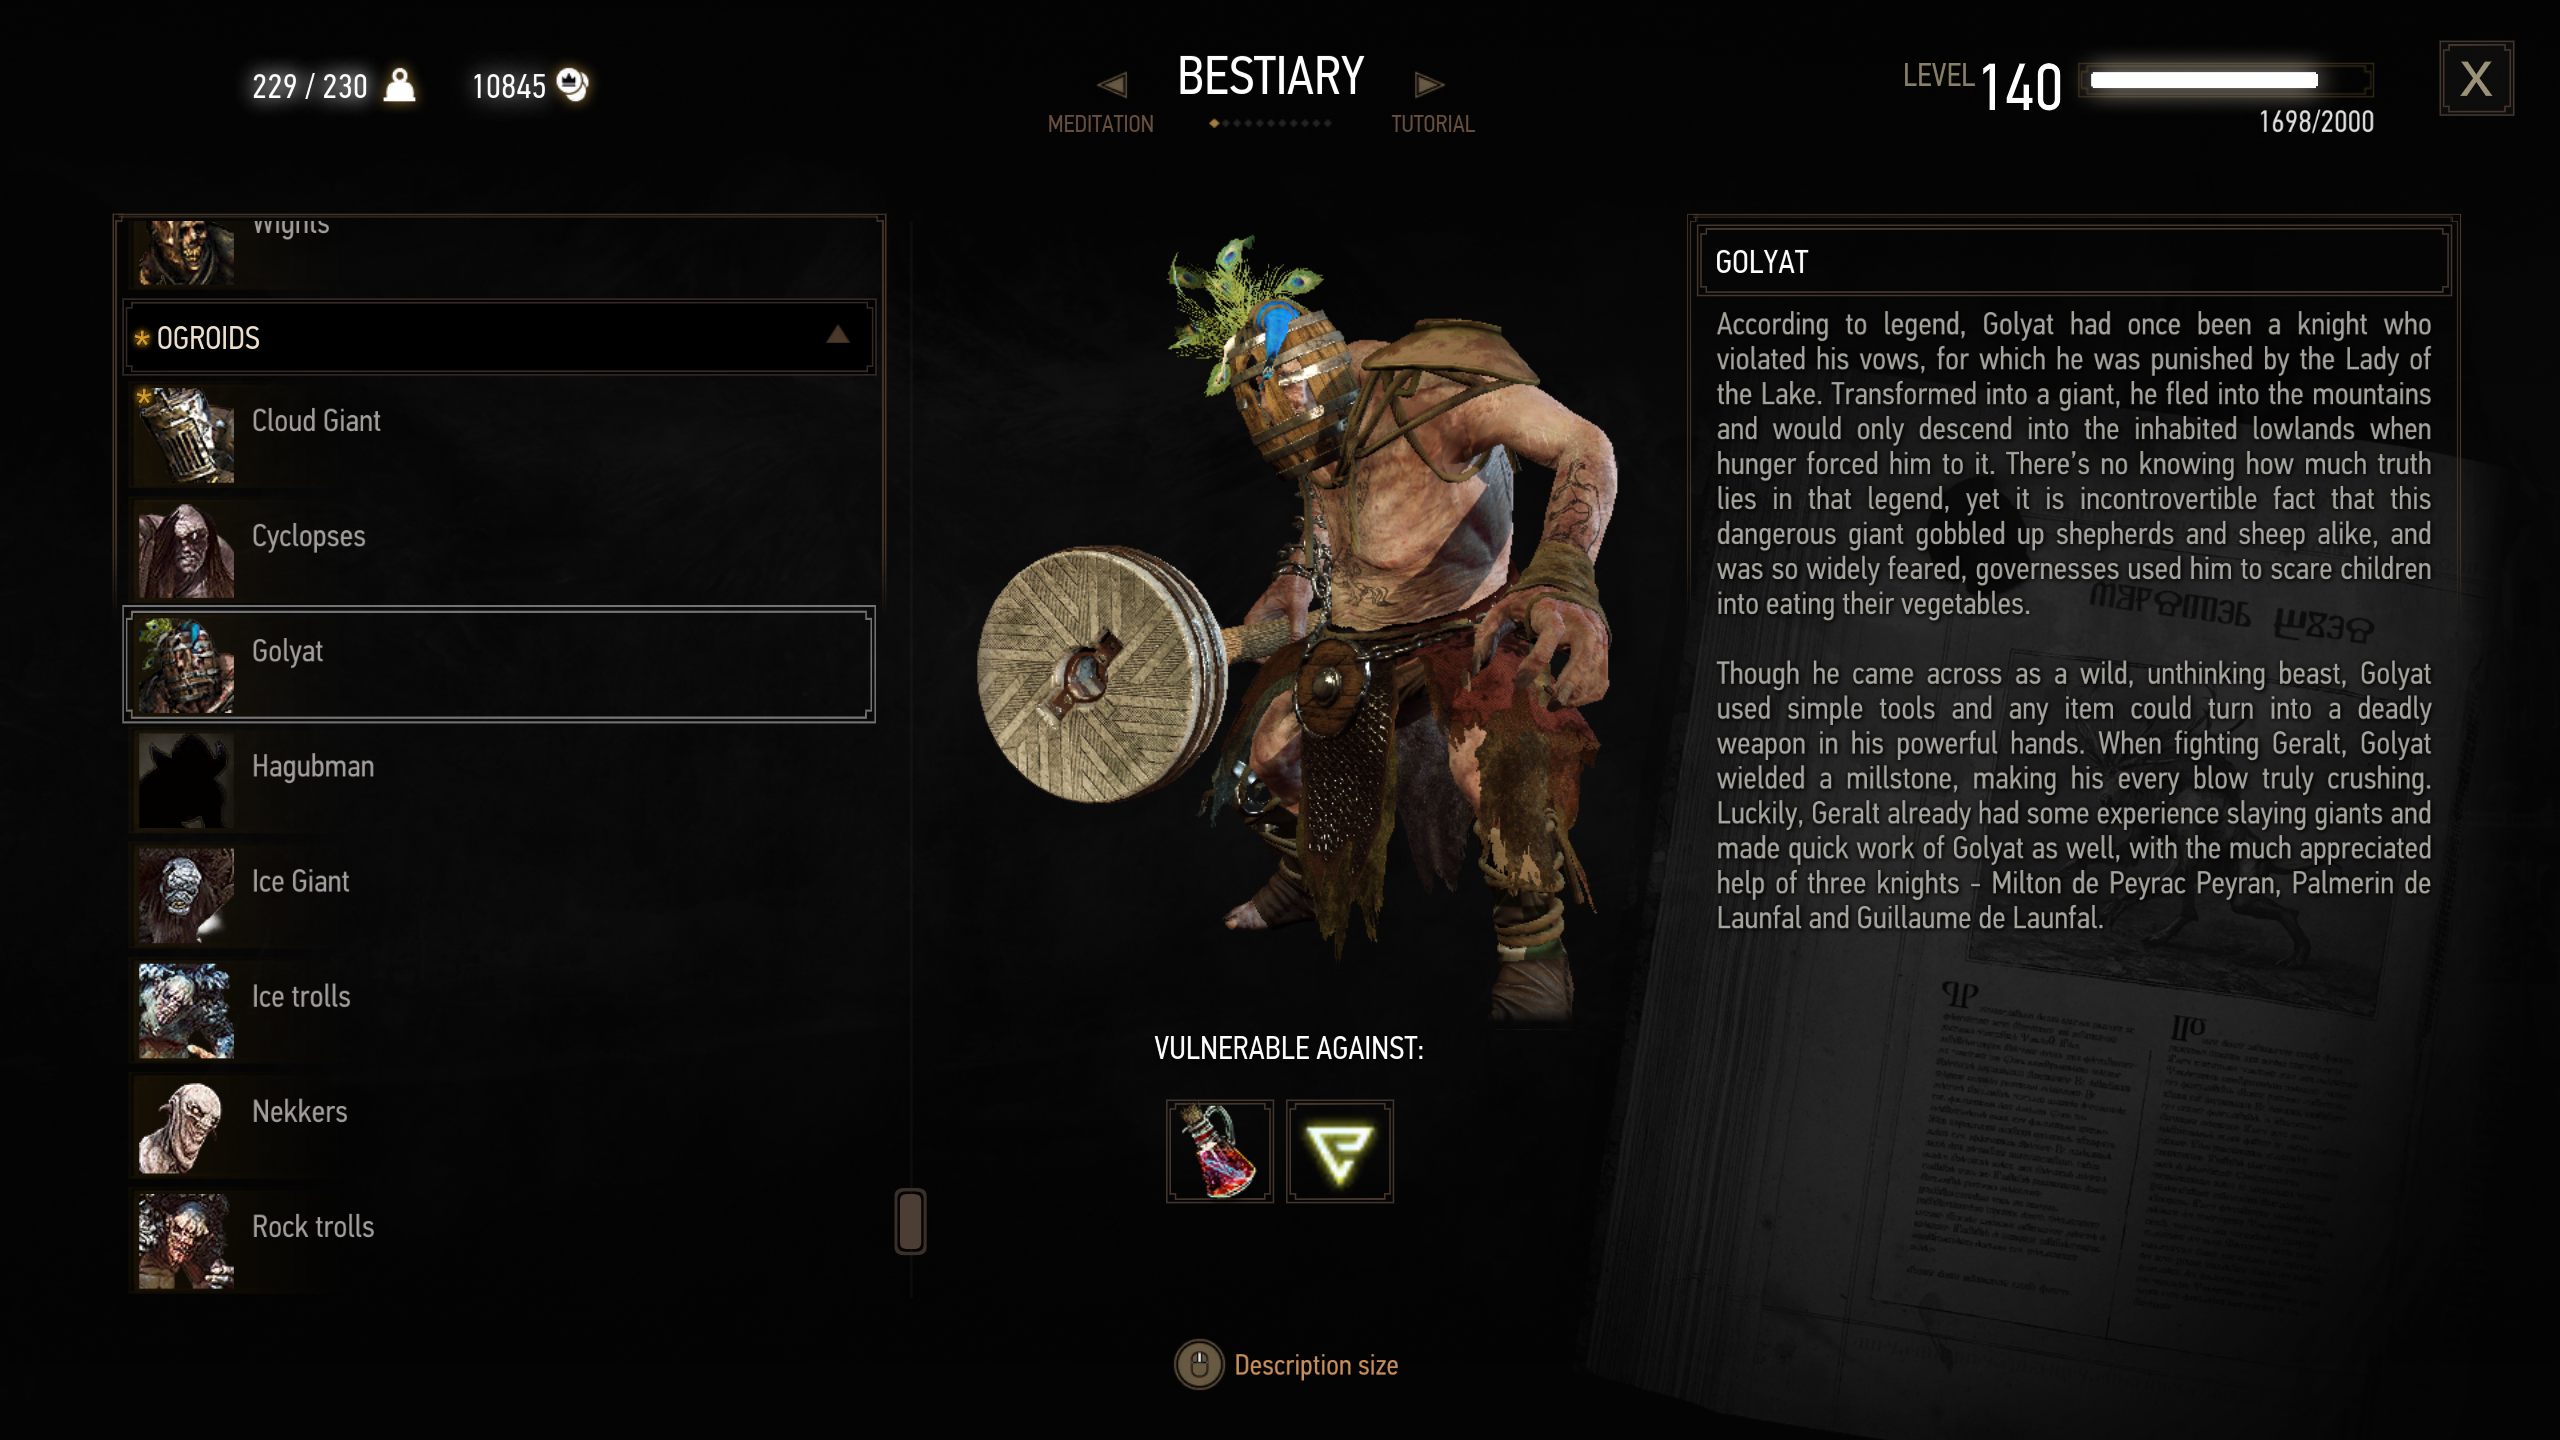 Live Bestiary ( 3D Models in the Bestiary ) at The Witcher 3